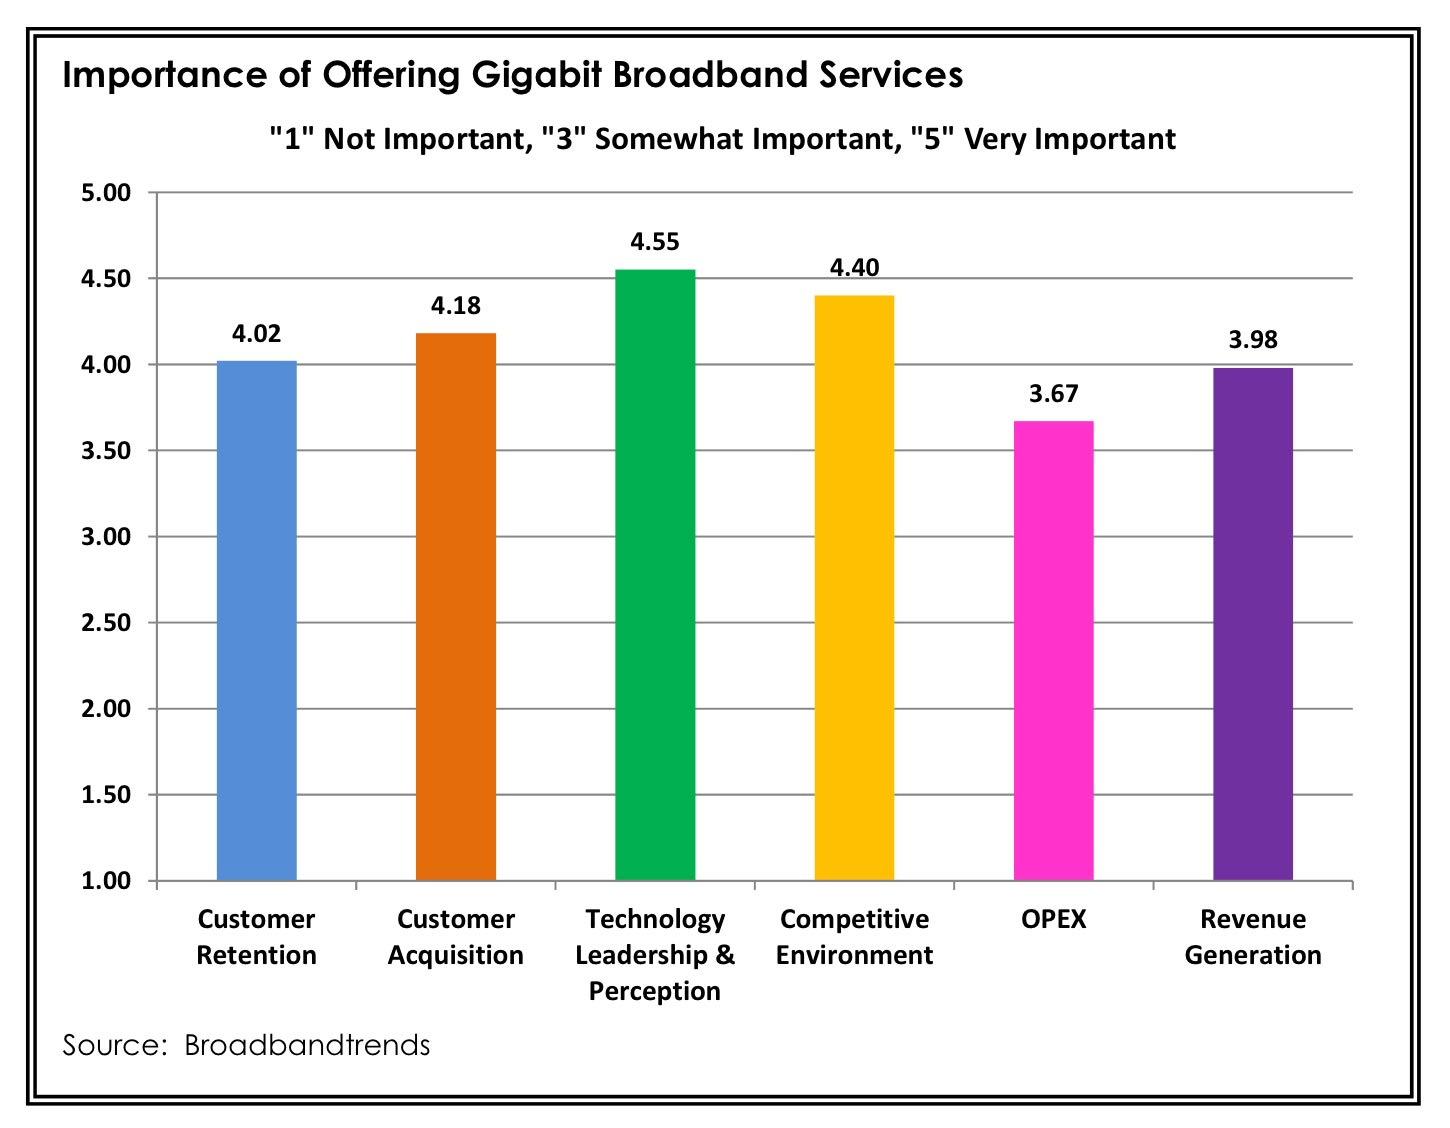 Broadband providers give several reasons why they think upgrading to gigabit broadband is a priority.